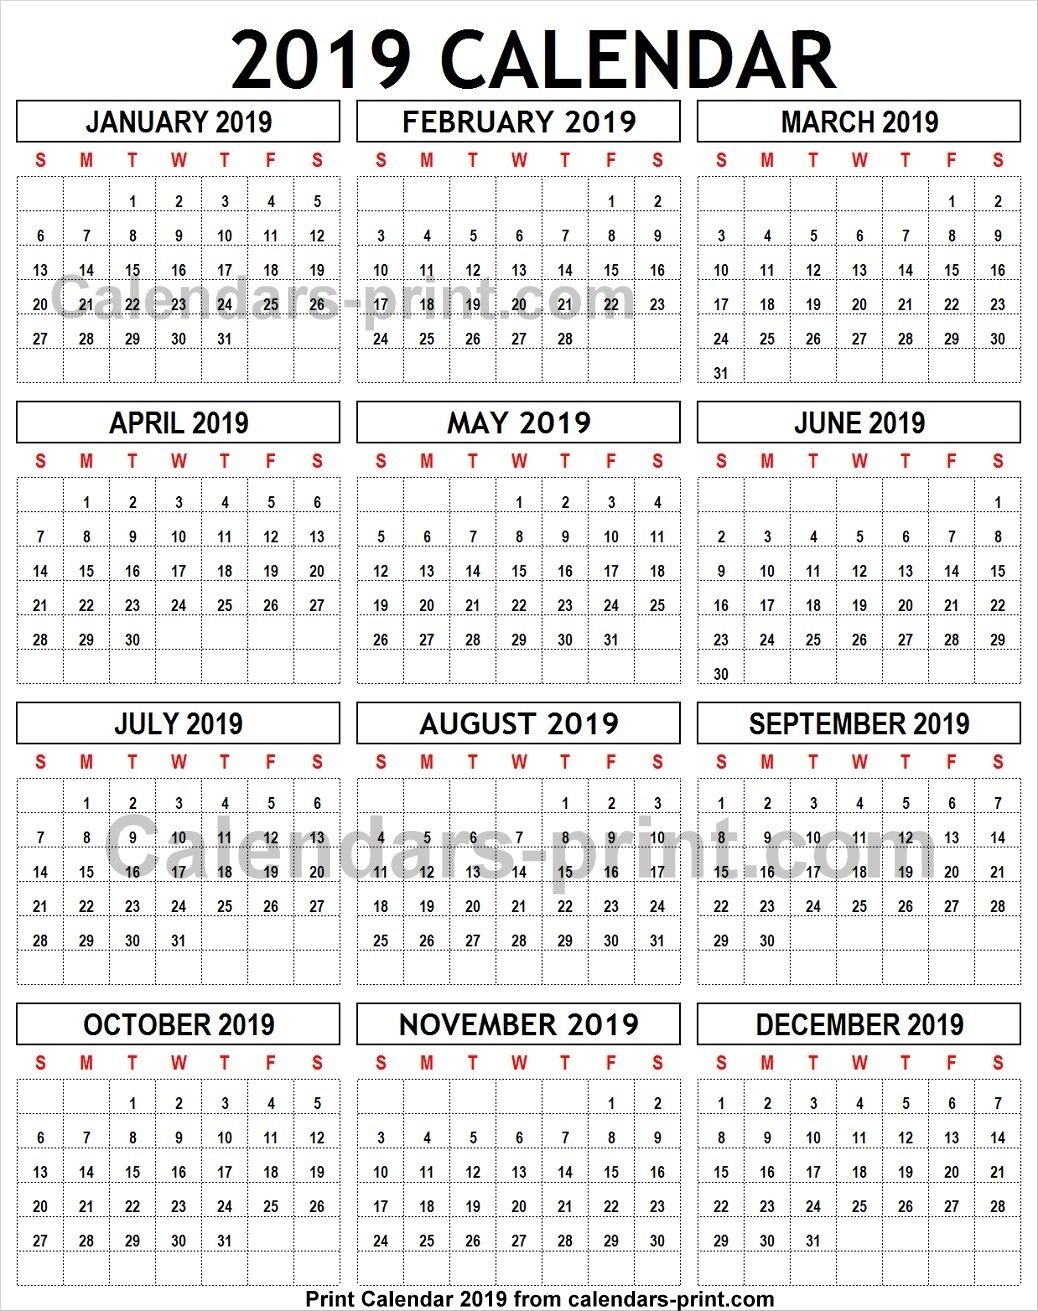 2019 Calendar To Print Template With Notes | Holidays 2019 Calendar 8 1/2 X 11